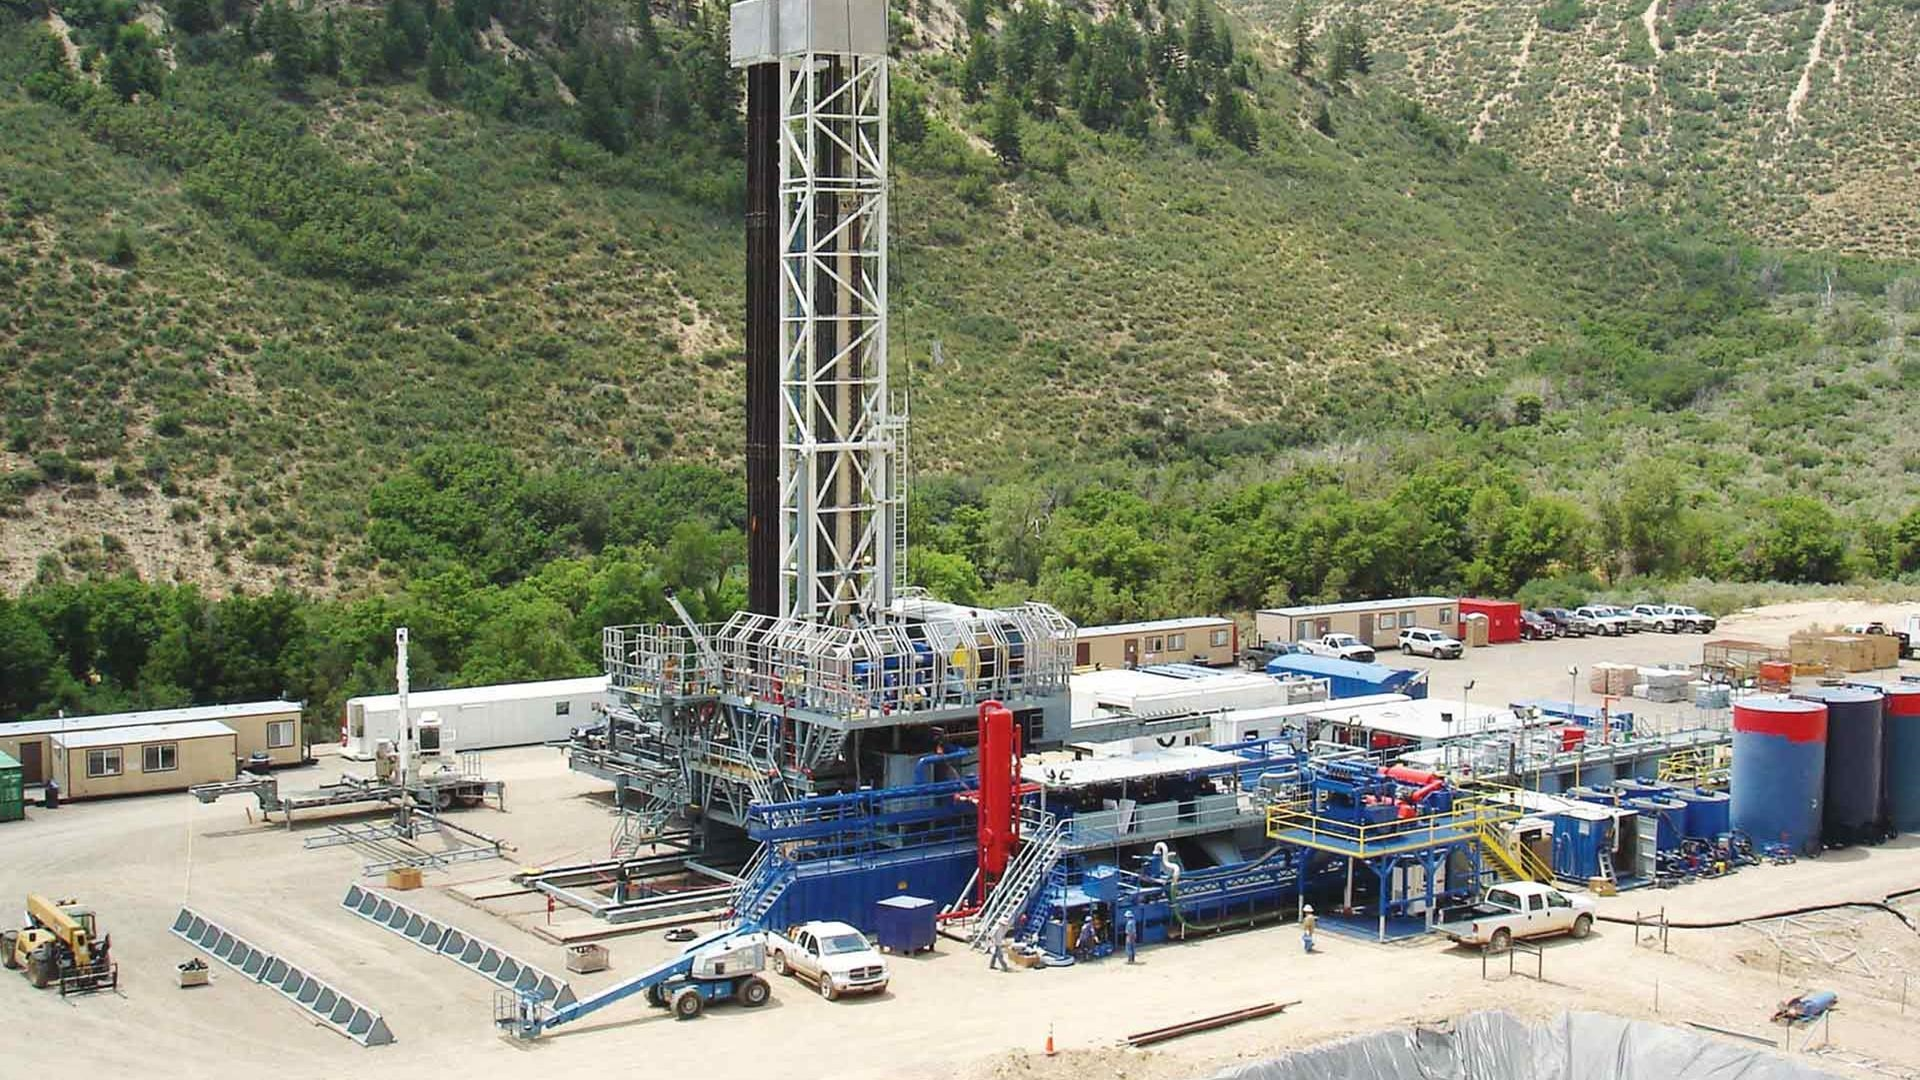 A Closed-Loop Mud System for drilling waste management on a rig in the mountains